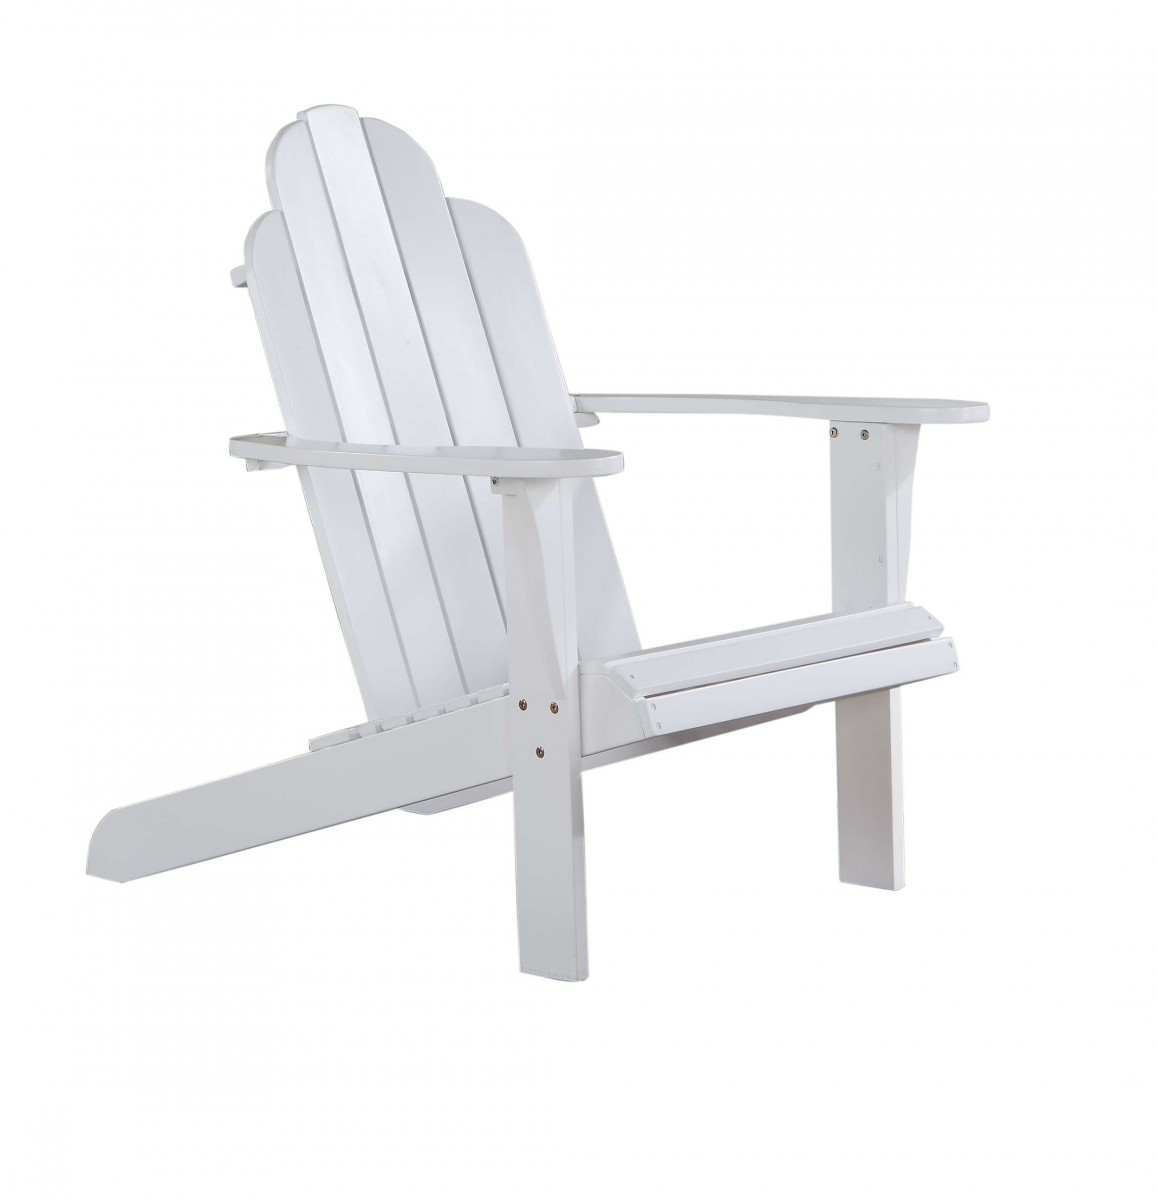 Home Decor Products Inc: Linon Home Decor Products Inc. White Adirondack Chair